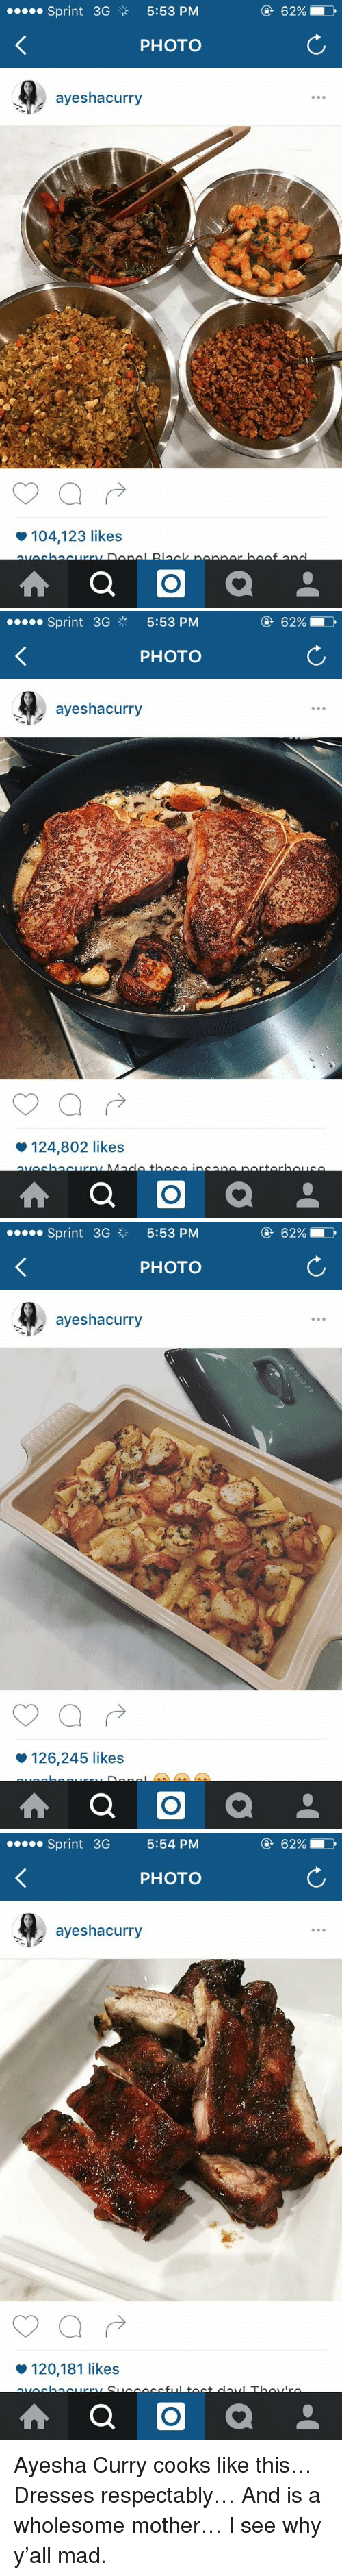 Ayesha Curry, Funny, and Respect: Sprint 3G  5:53 PM  PHOTO  ayeshacurry  104,123 likes  A a O  a  62% D   Sprint 3G  5:53 PM  PHOTO  ayeshacurry  124,802 likes  A a O  a  62% D   Sprint 3G 3 5:53 PM  PHOTO  ayeshacurry  126,245 likes  A a O  a  62%   Sprint 3G  5:54 PM  PHOTO  ayeshacurry  120,181 likes  A a O  a Ayesha Curry cooks like this… Dresses respectably… And is a wholesome mother… I see why y'all mad.